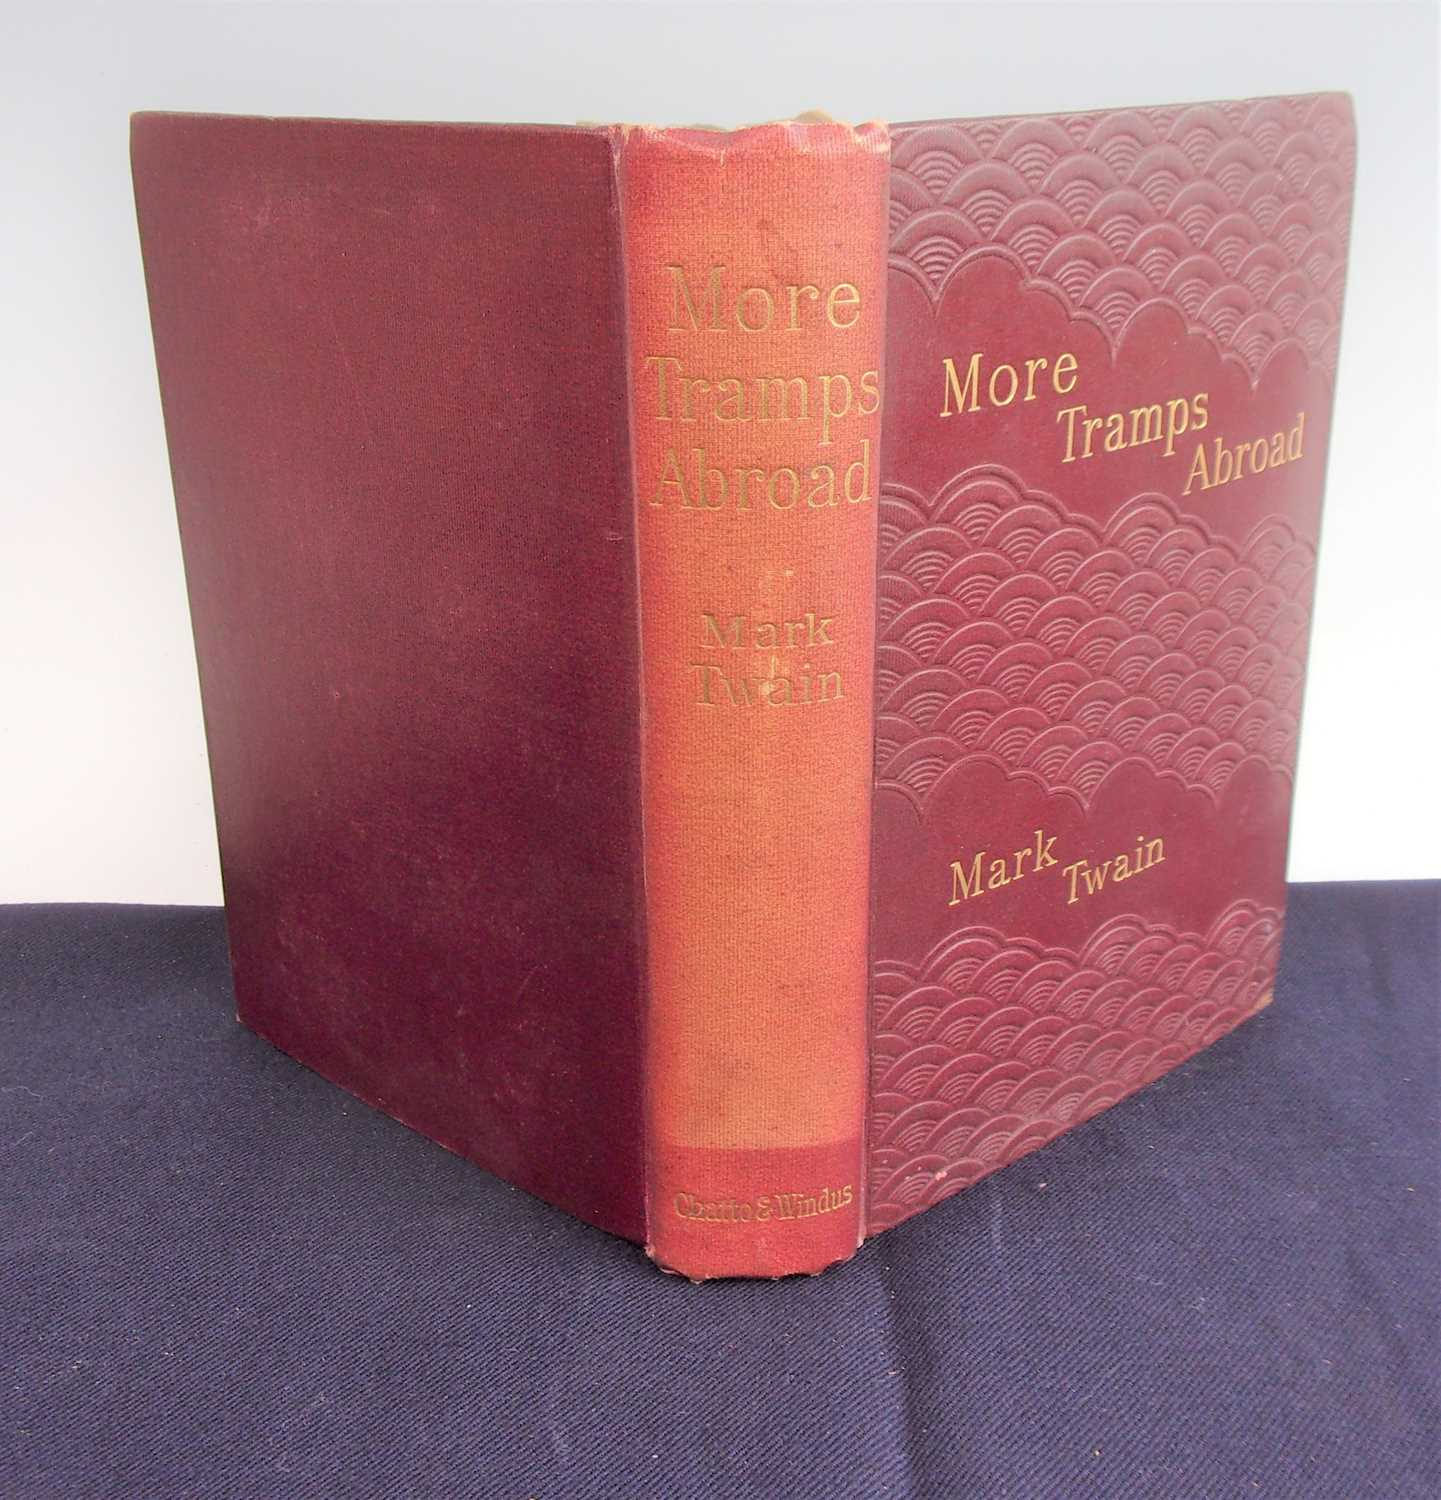 TWAIN, Mark. More Tramps Abroad. Chatto & Windus, London. 1897 UK 1st Edition. In original - Image 2 of 3